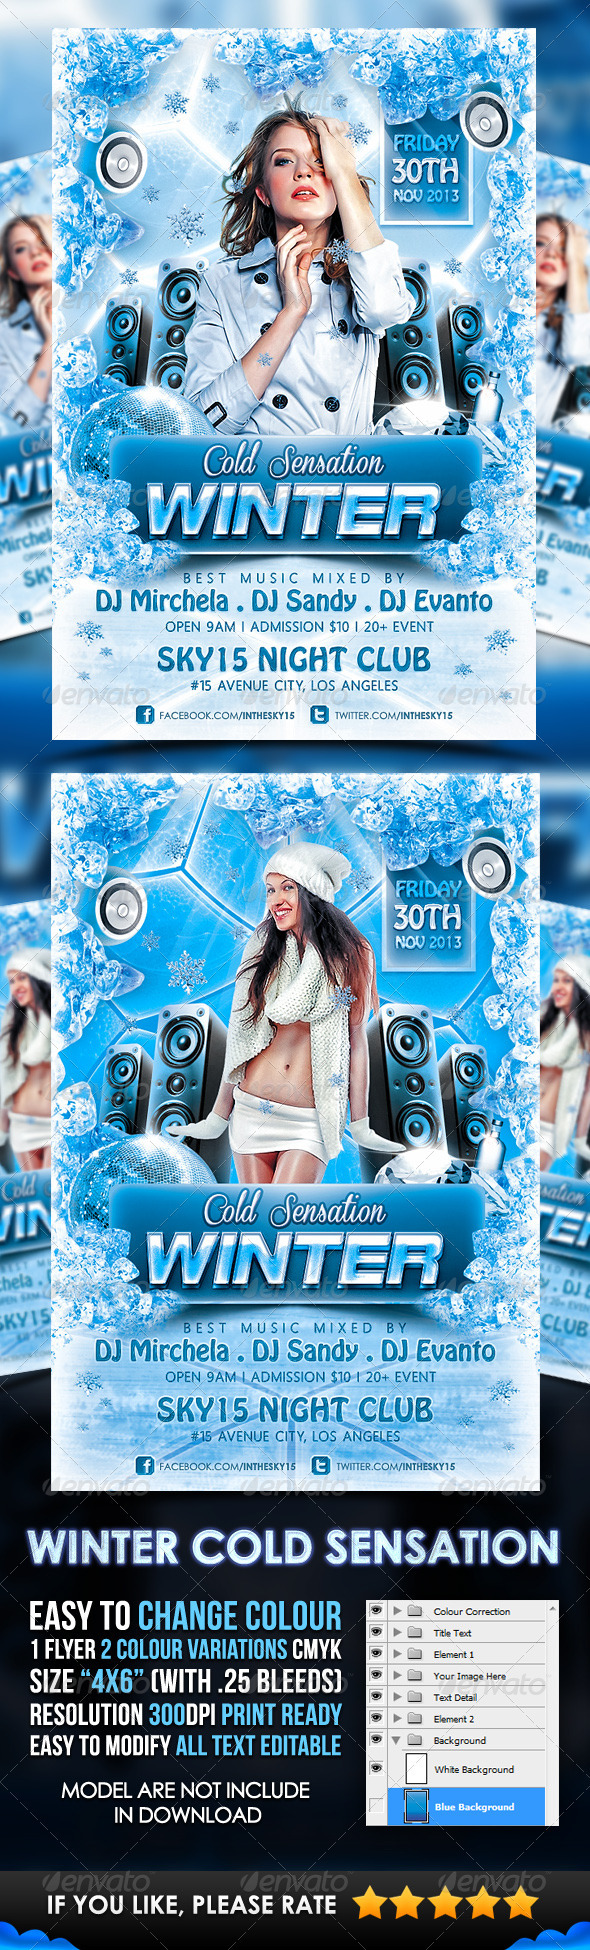 GraphicRiver Winter Cold Sensation Flyer Template 3442261